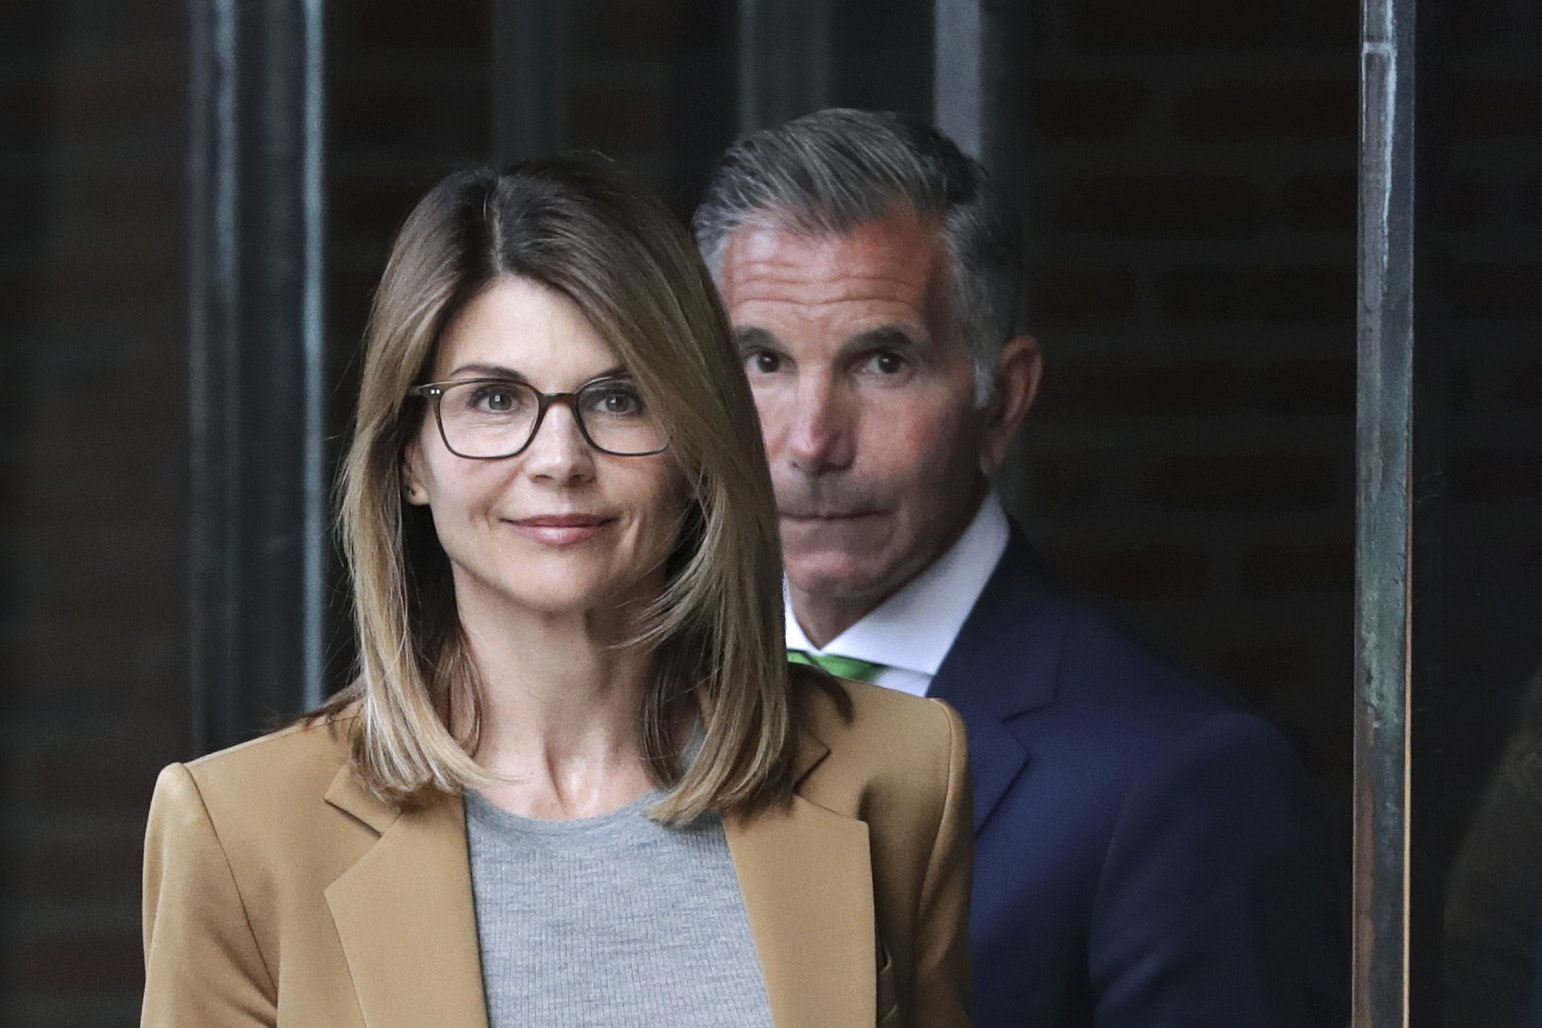 Actress Lori Loughlin and her husband Mossimo Giannulli